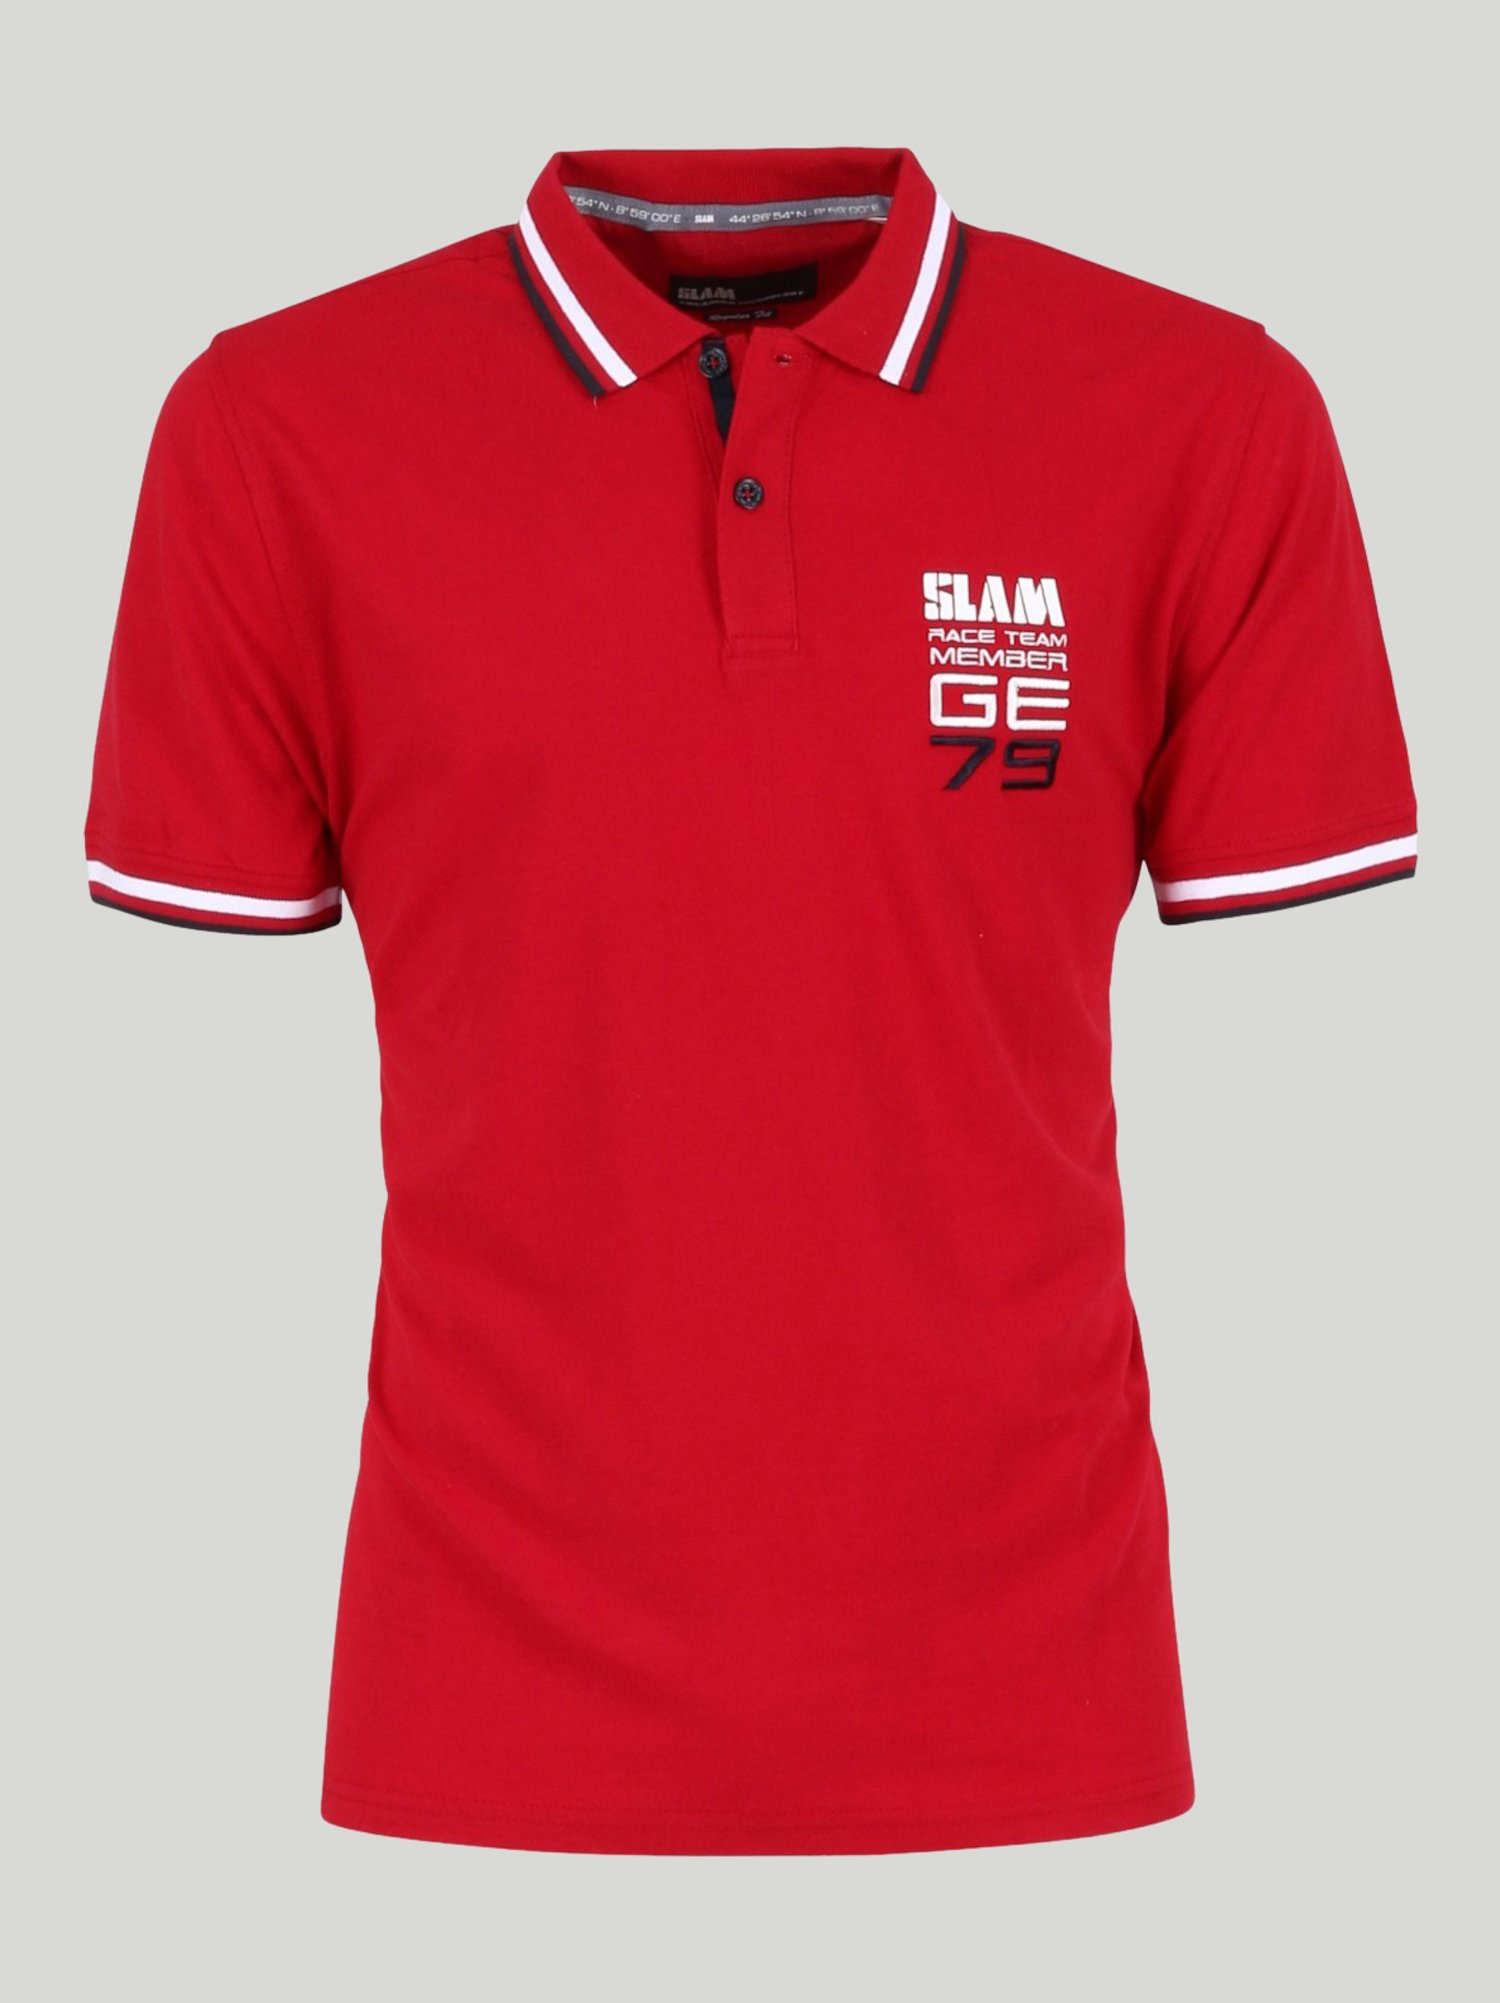 Genoa 2.1 Embroidery polo shirt  - Chili Red